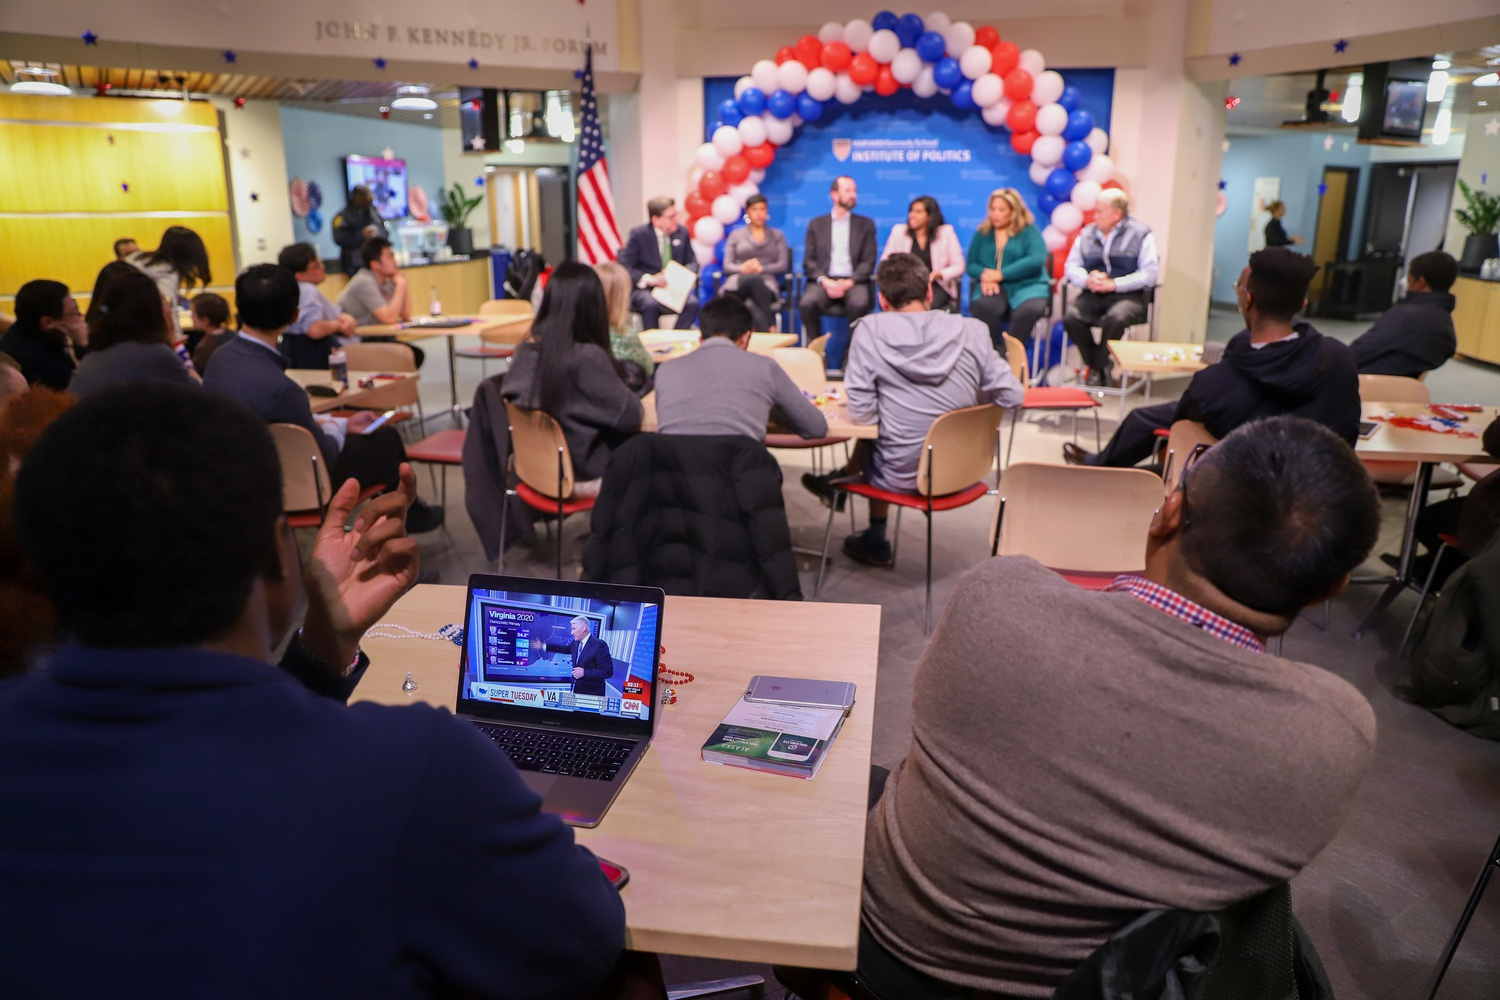 Students monitor Super Tuesday results during one of the final in-person Institute of Politics events prior to the pandemic in March 2020.